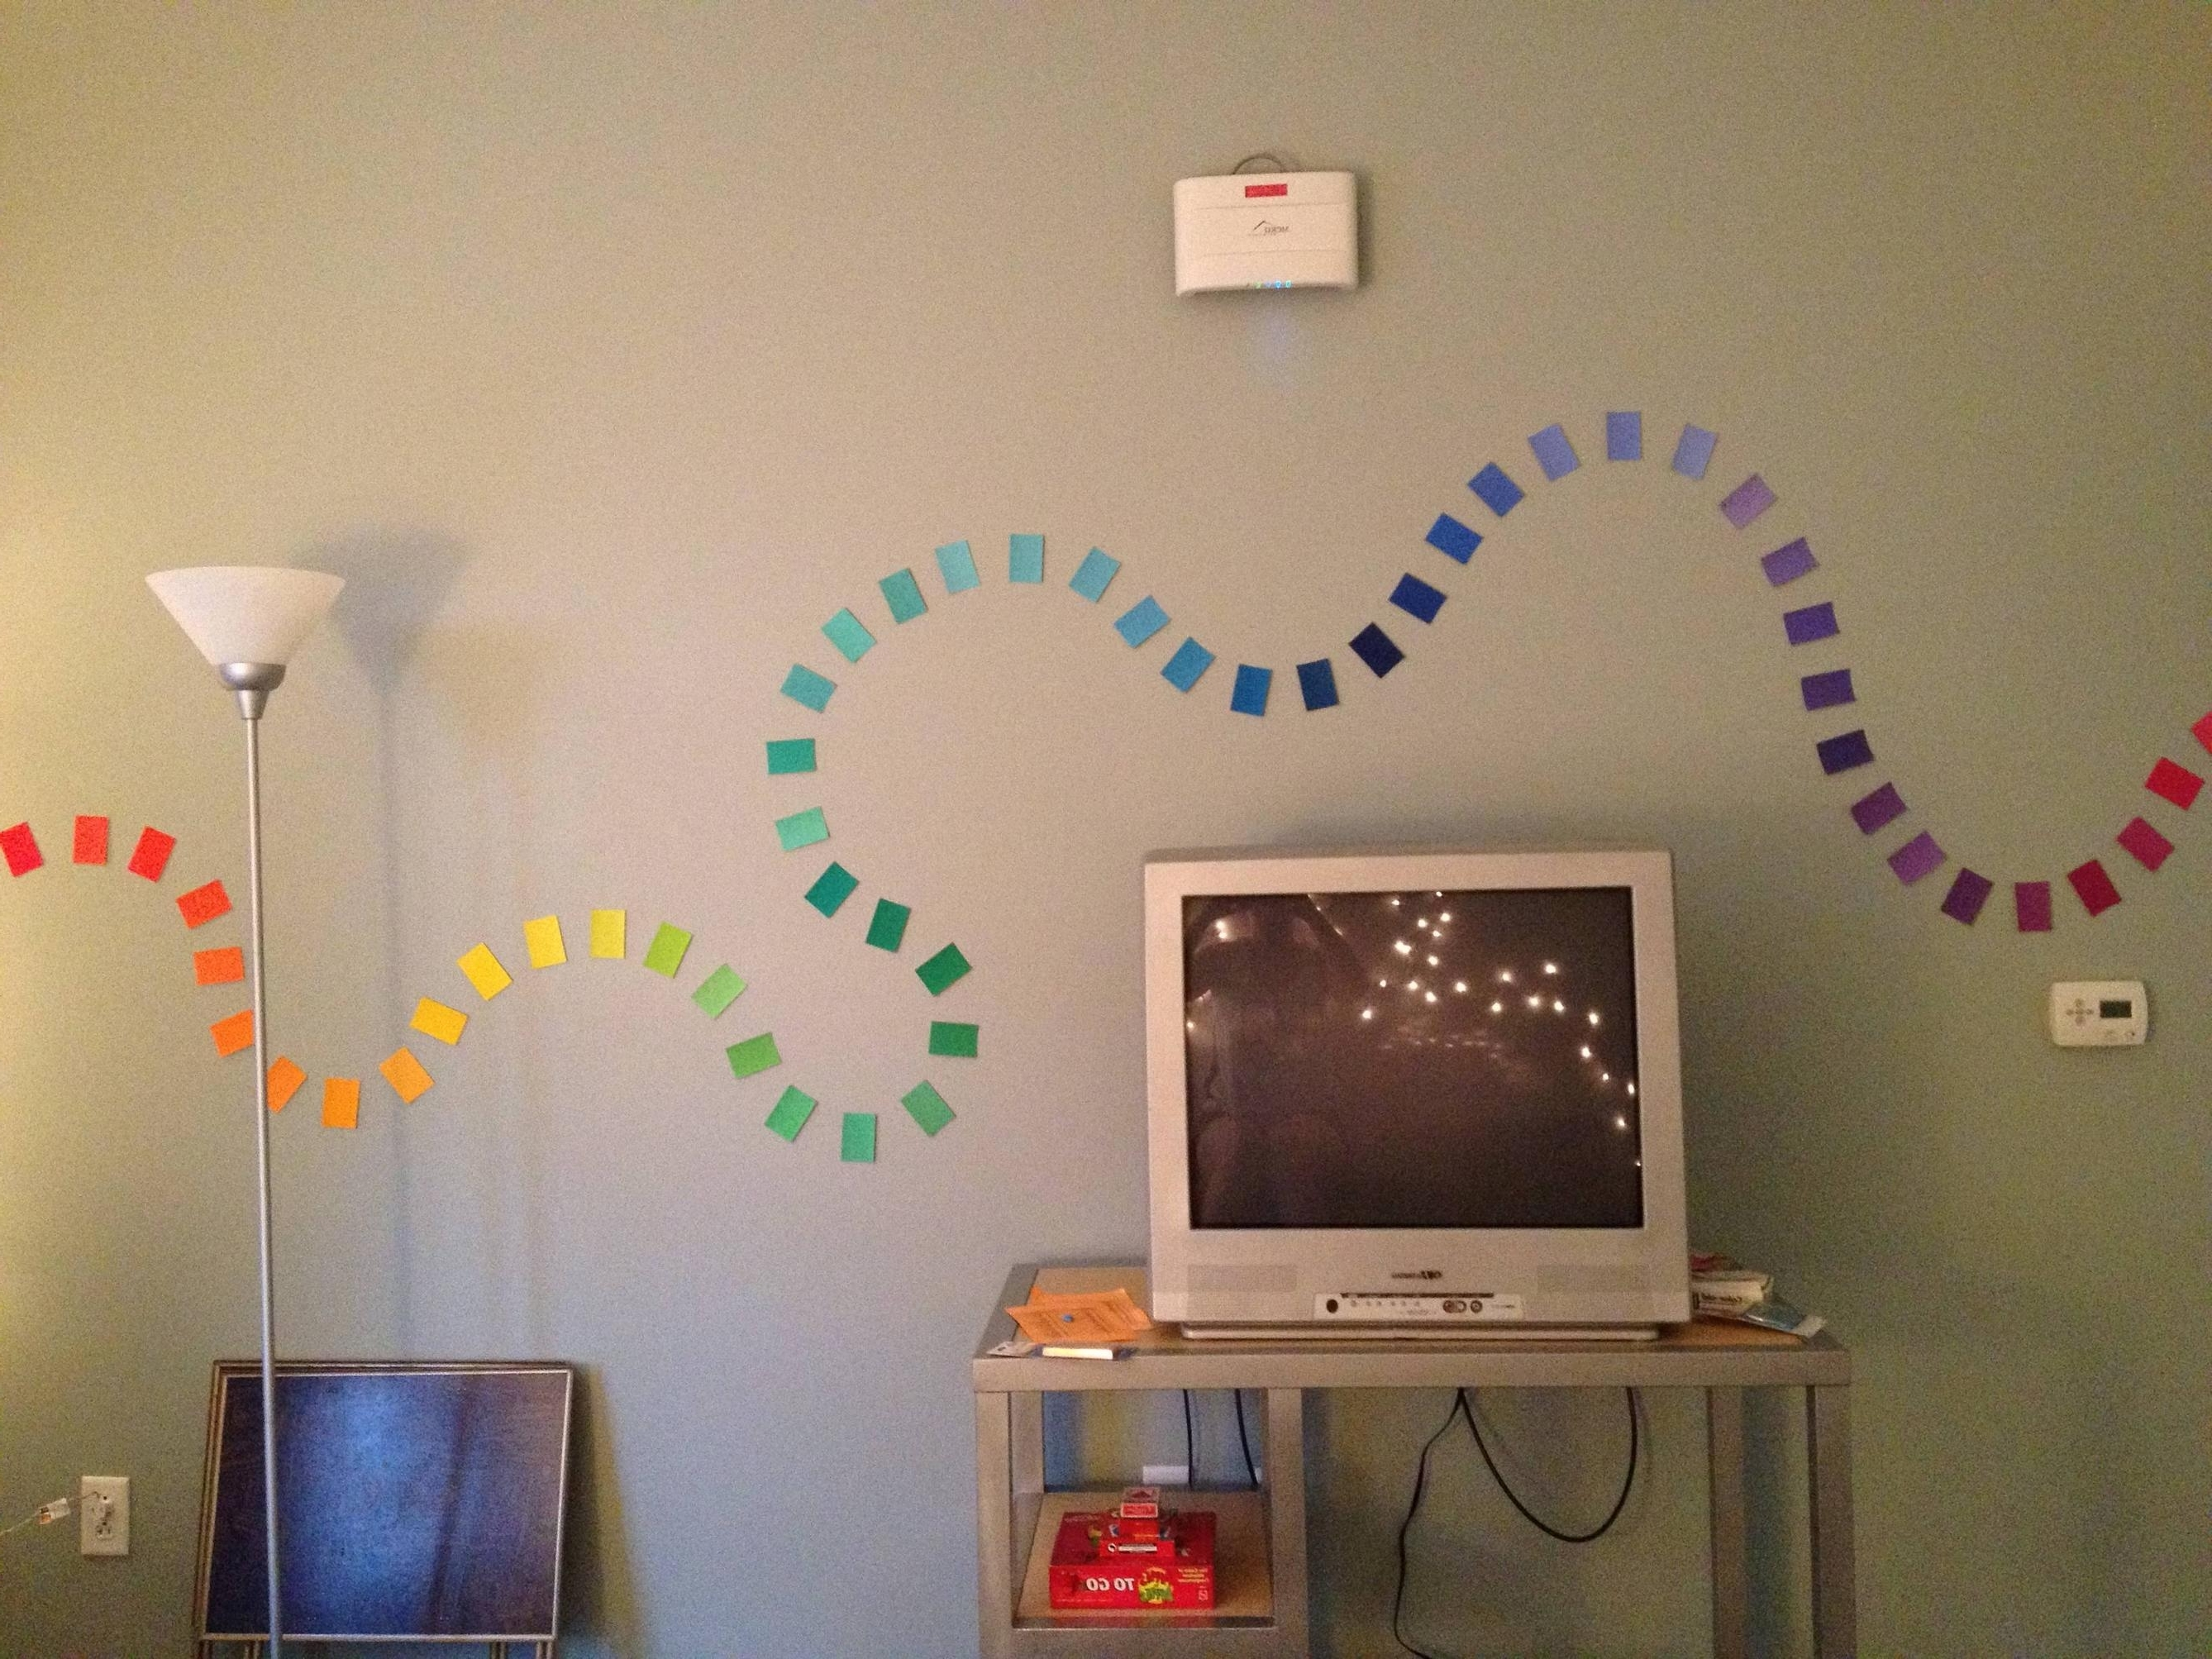 Home Decorating With Regard To Newest Paint Swatch Wall Art (Gallery 4 of 15)